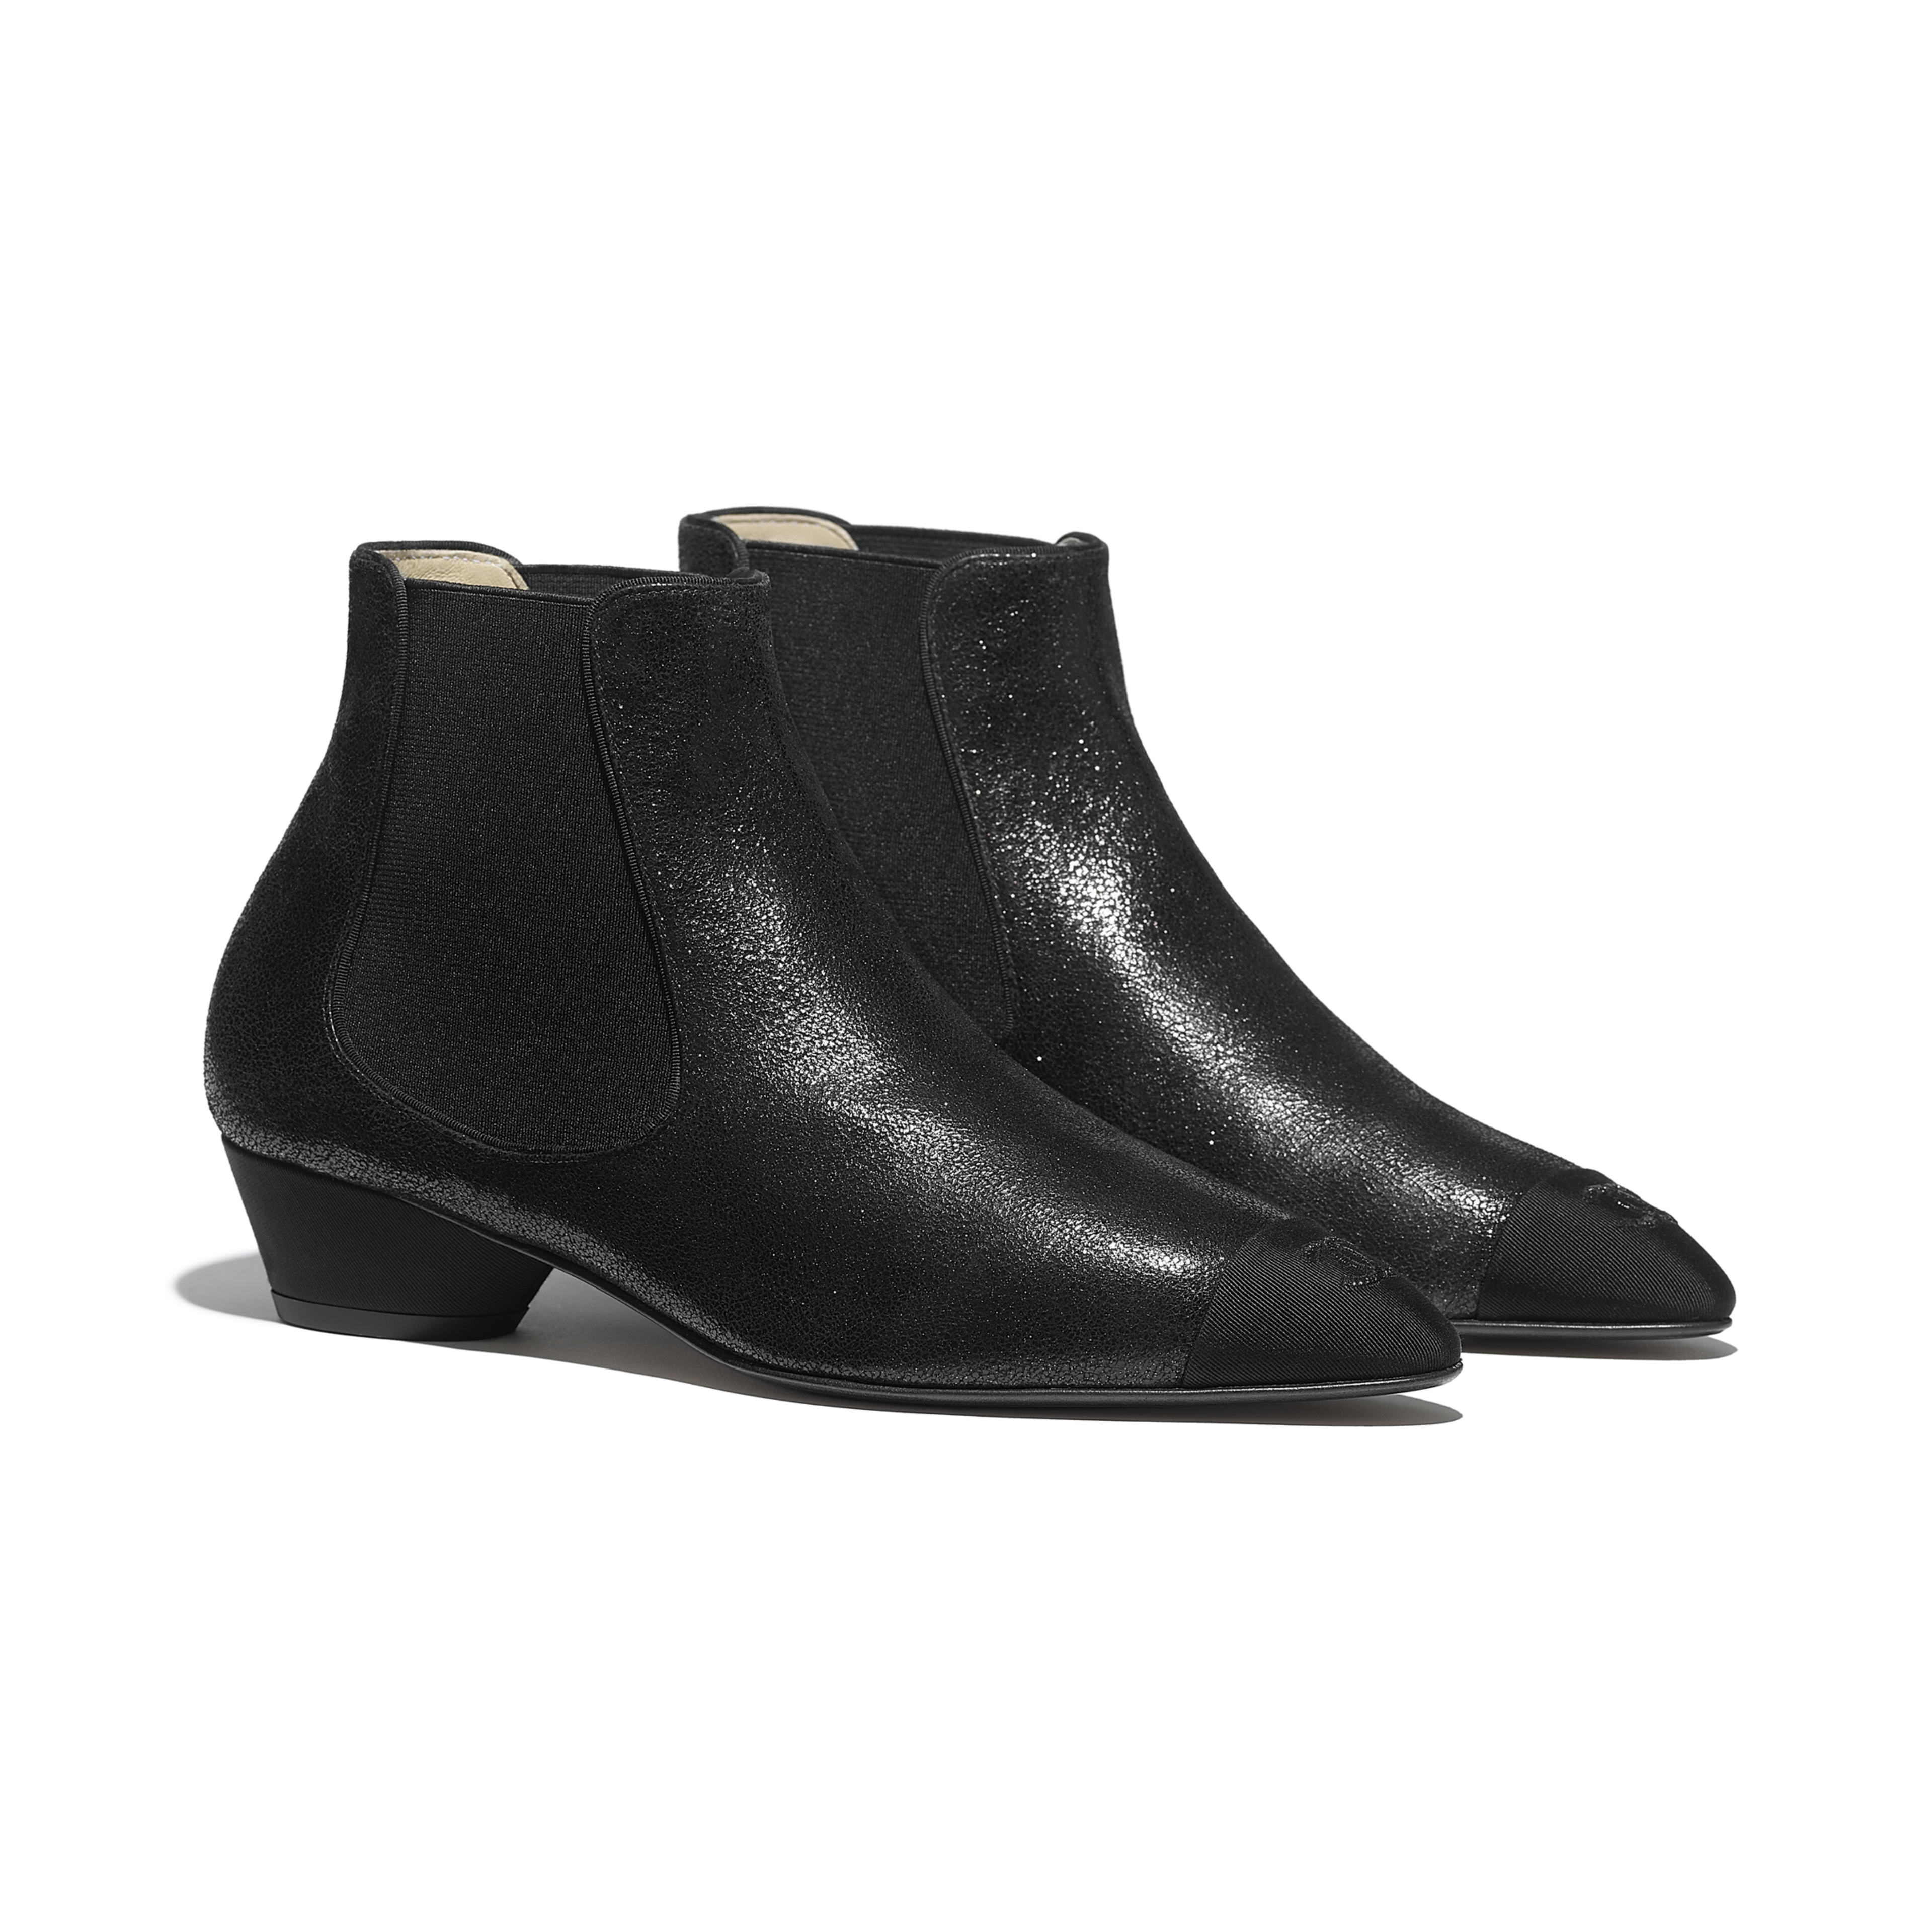 Ankle Boots - Black - Goatskin & Grosgrain - Alternative view - see full sized version